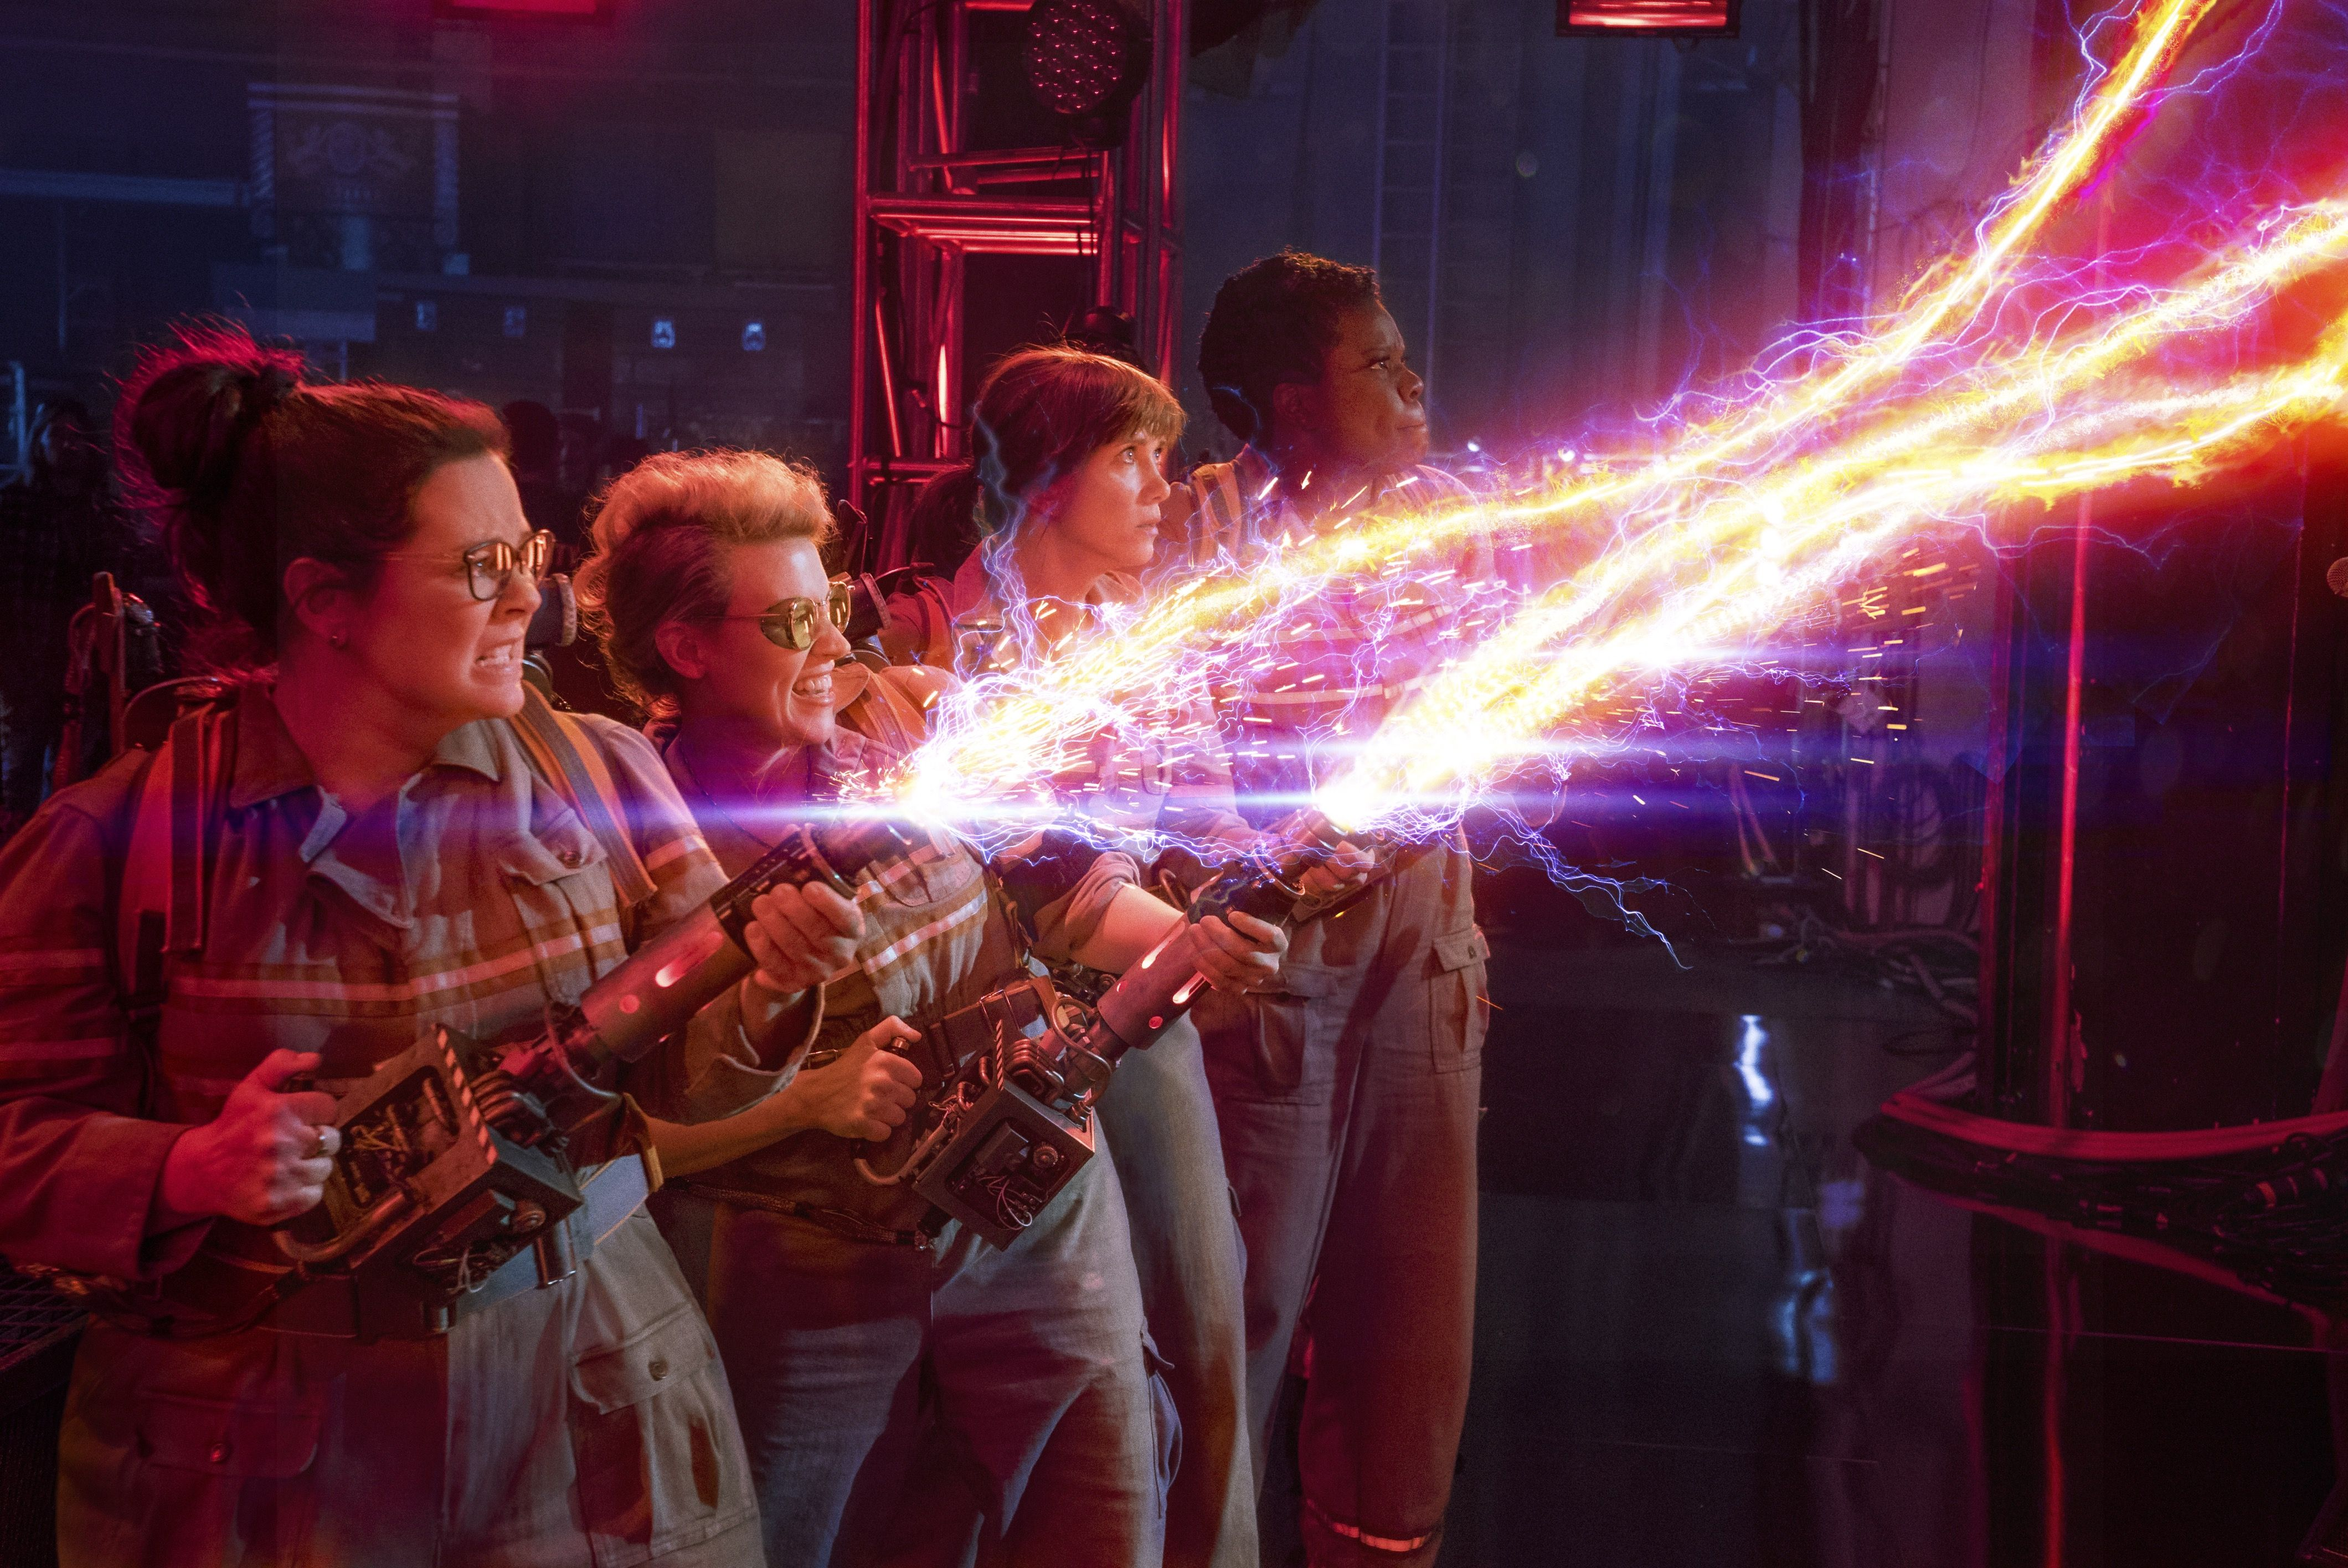 ghostbusters 2016 hd, hd movies, 4k wallpapers, images, backgrounds